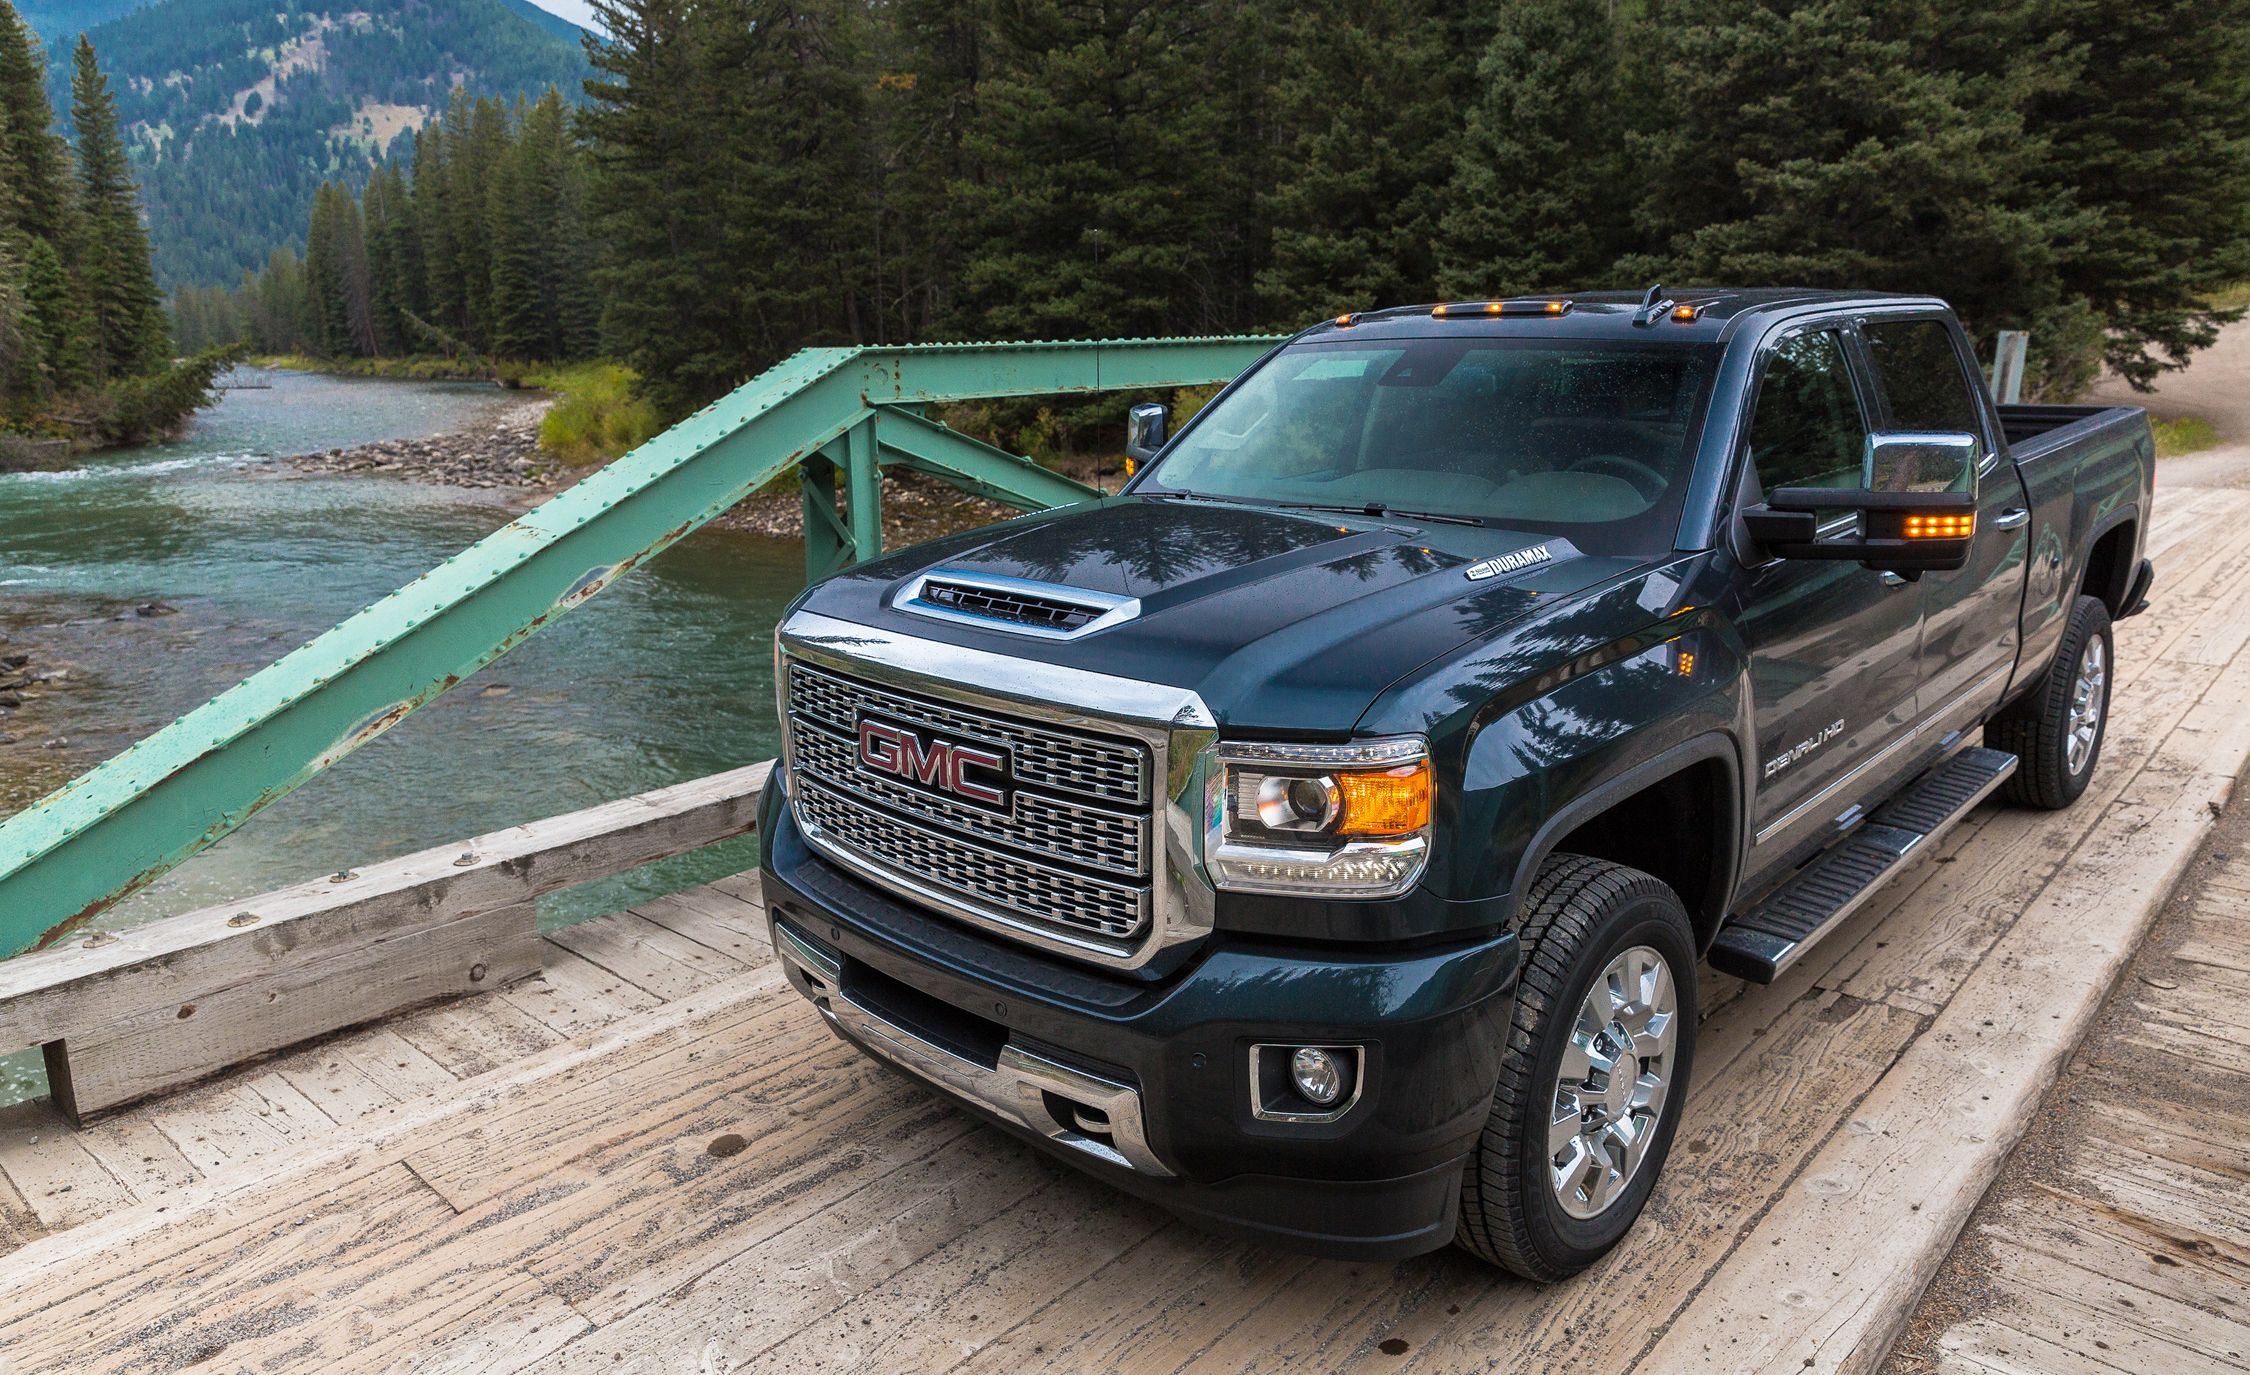 2020 Gmc Sierra 2500hd 3500 Hd Reviews Gmc Sierra 2500hd 3500